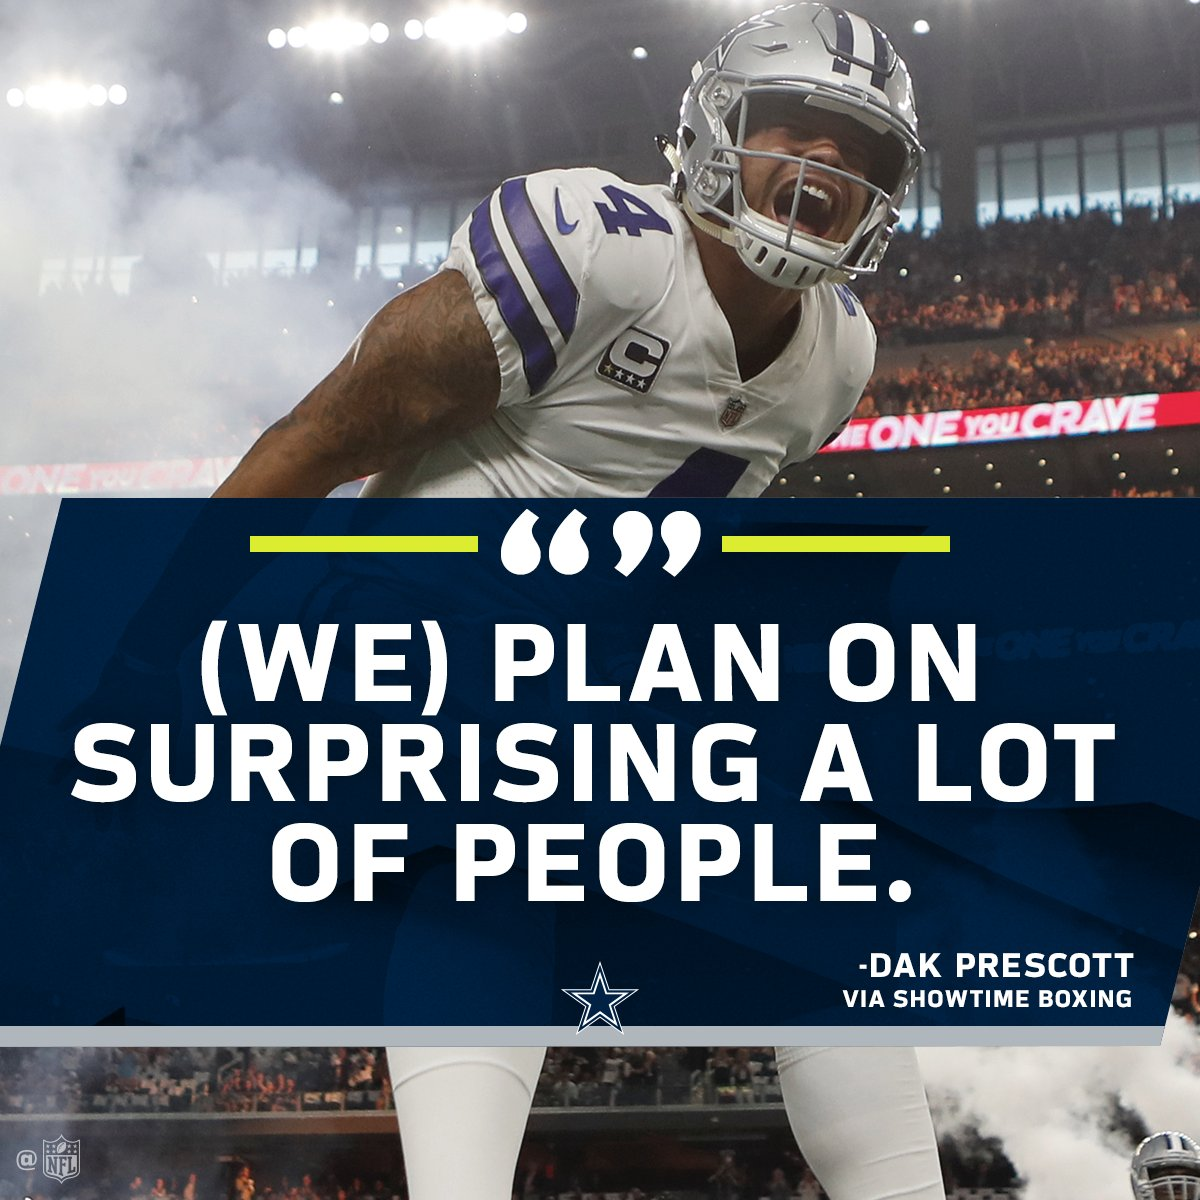 Don't you dare overlook the @dallascowboys: https://t.co/JF5MR5ul8g https://t.co/blhHoeFMnr